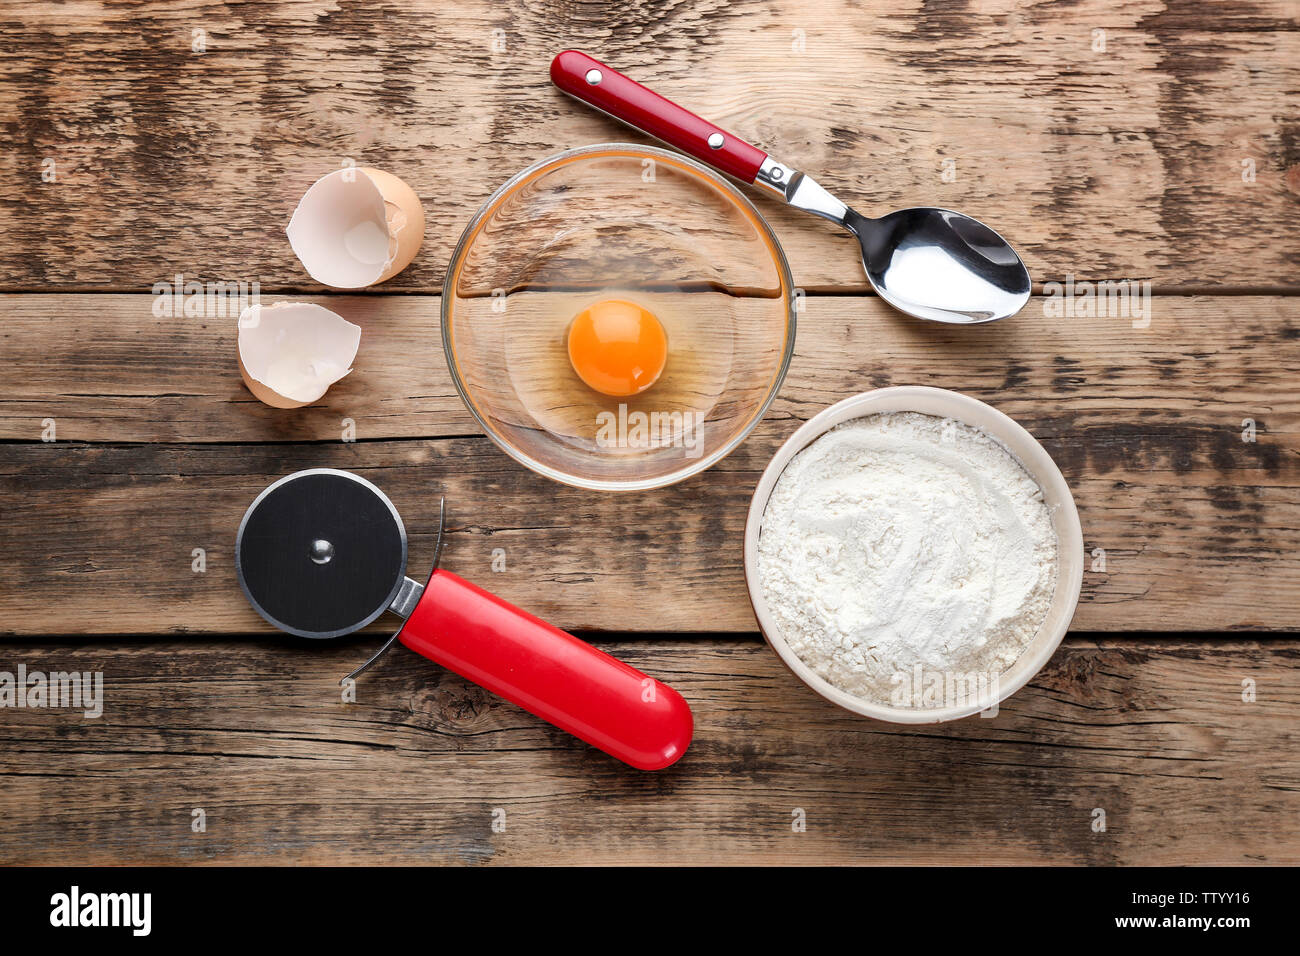 Food ingredients and kitchen utensils for cooking on wooden background - Stock Image